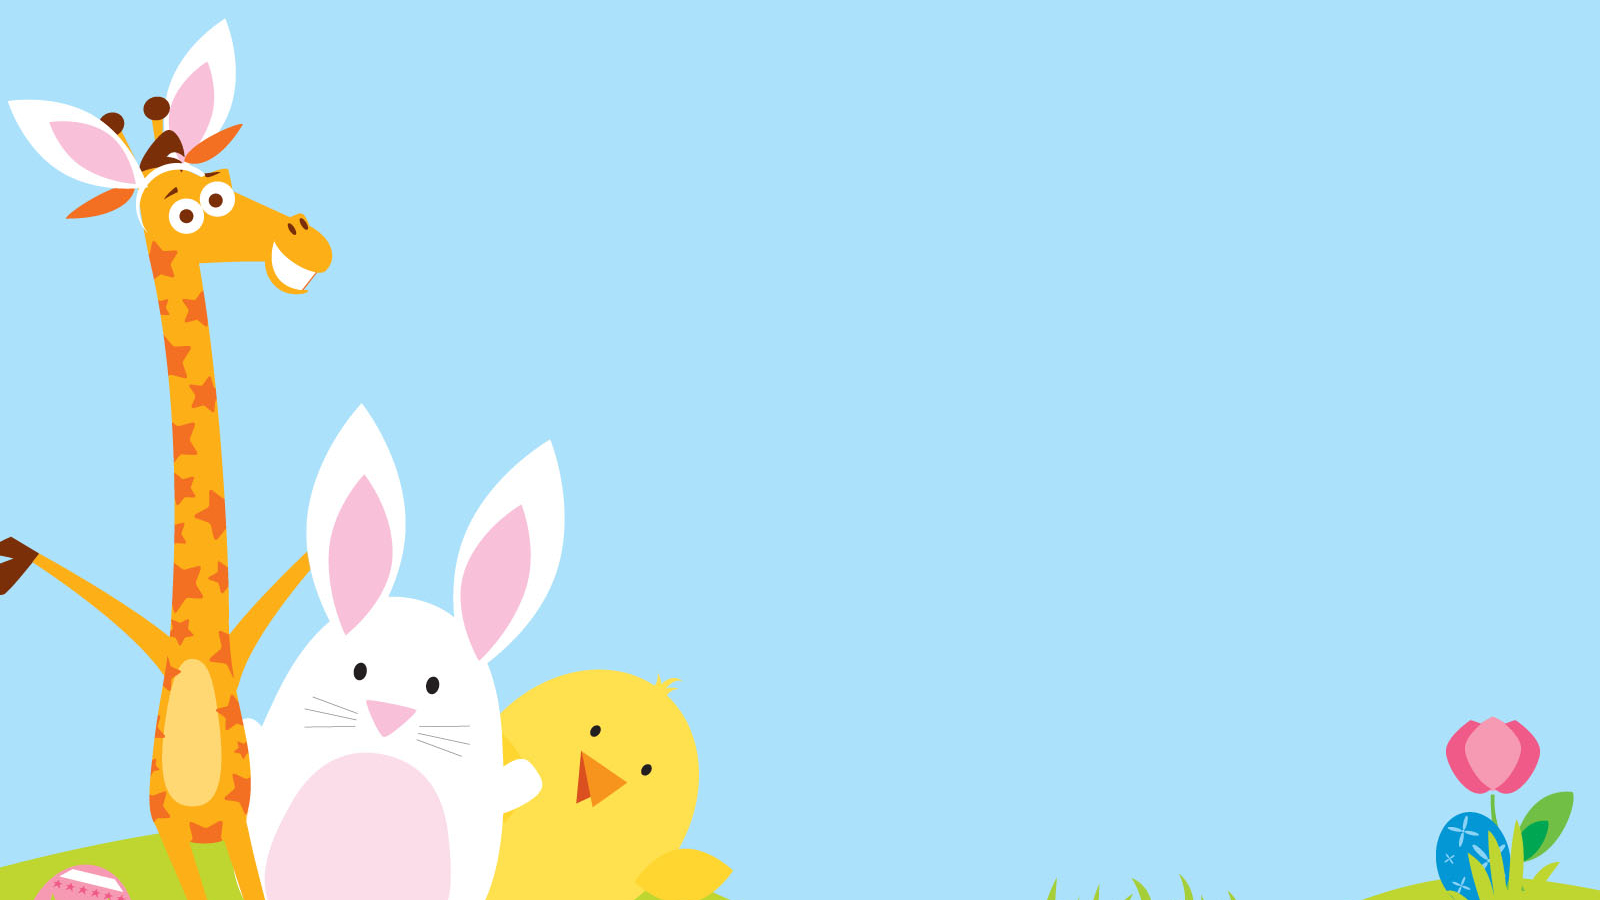 Free Download Disney Easter Wallpaper 1600x1200 For Your Desktop Mobile Tablet Explore 47 Disney Easter Desktop Wallpaper Disney St Patrick S Day Wallpaper Eeyore Easter Wallpaper Disney Easter Wallpaper And Screensavers